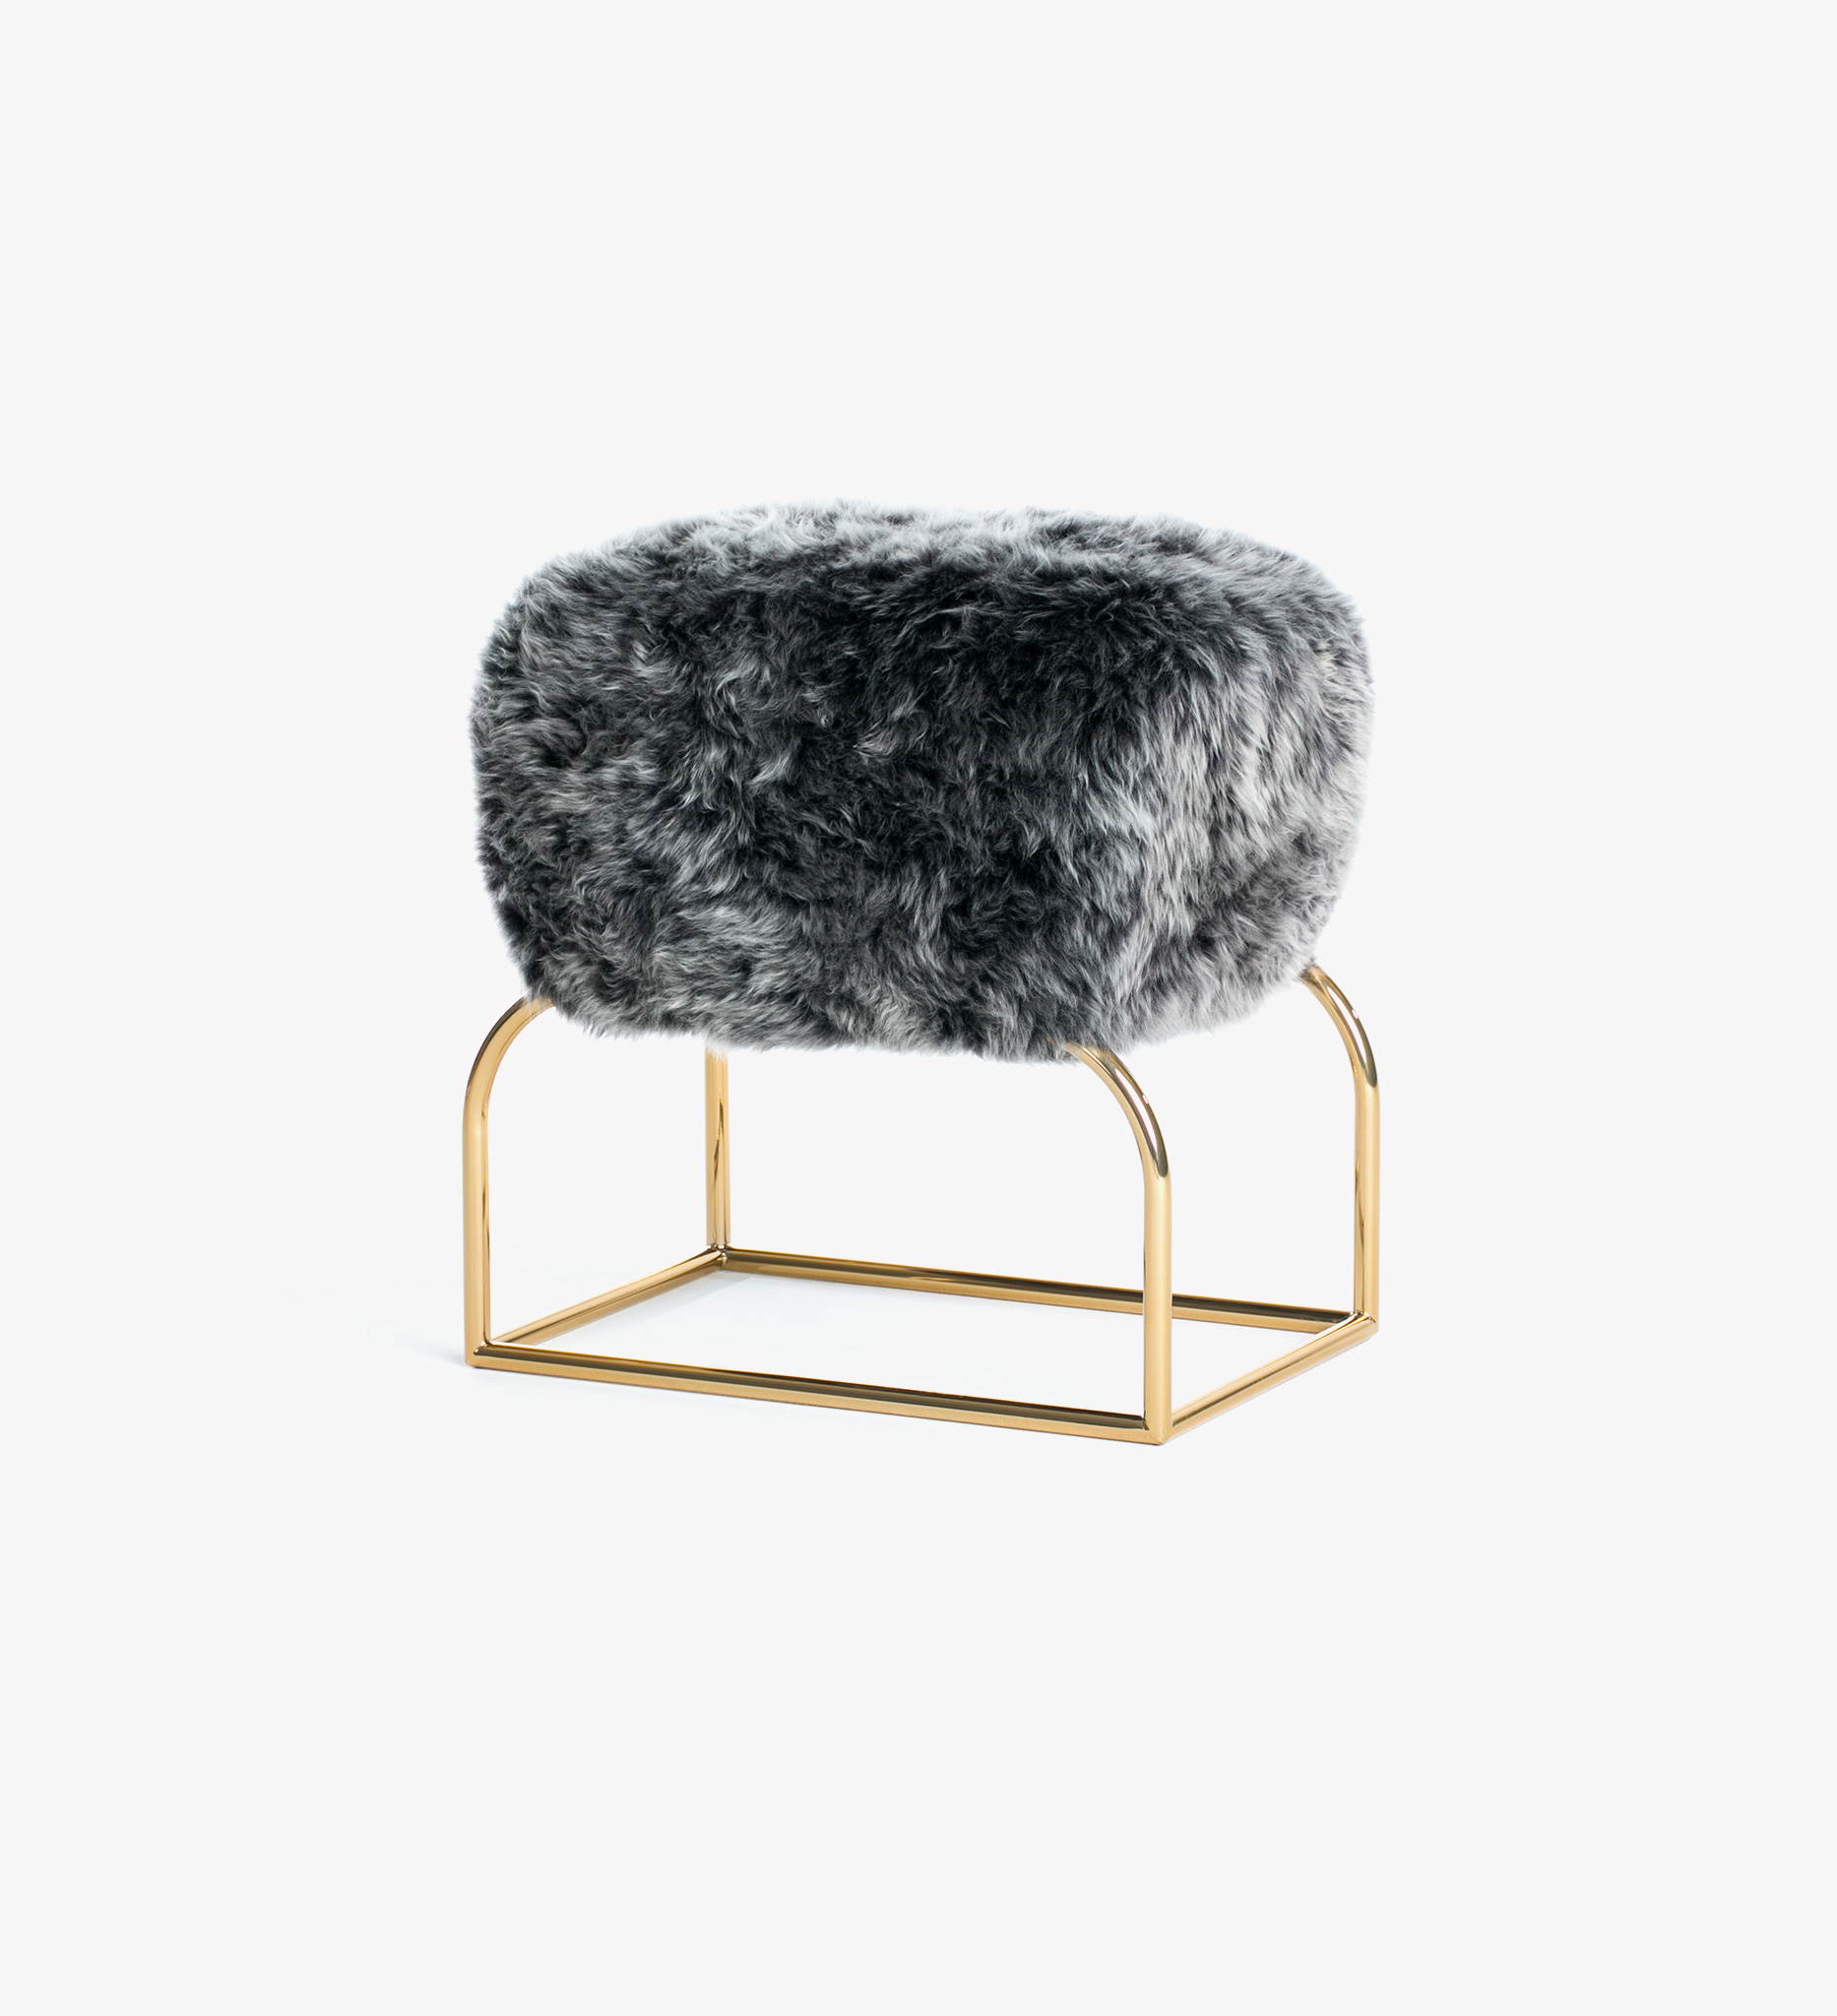 Stool, seating, bench, fur, diva, Long-Haired Patagonian Sheepskin, pepper, gray, grey, Polished Brass, brass